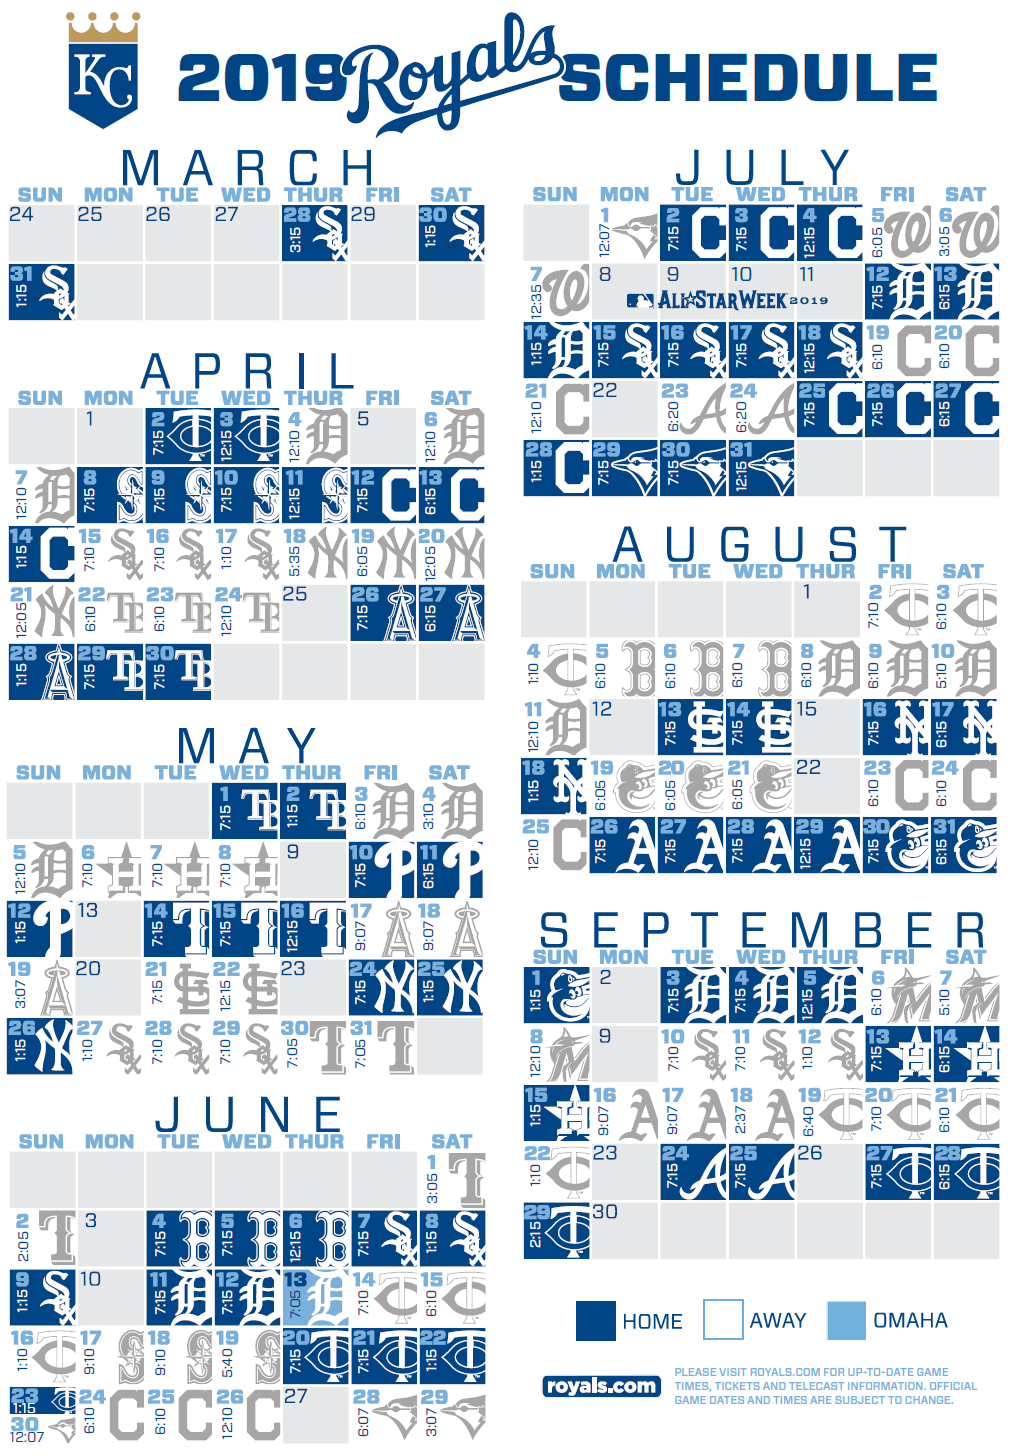 Impertinent image with regard to royals printable schedule